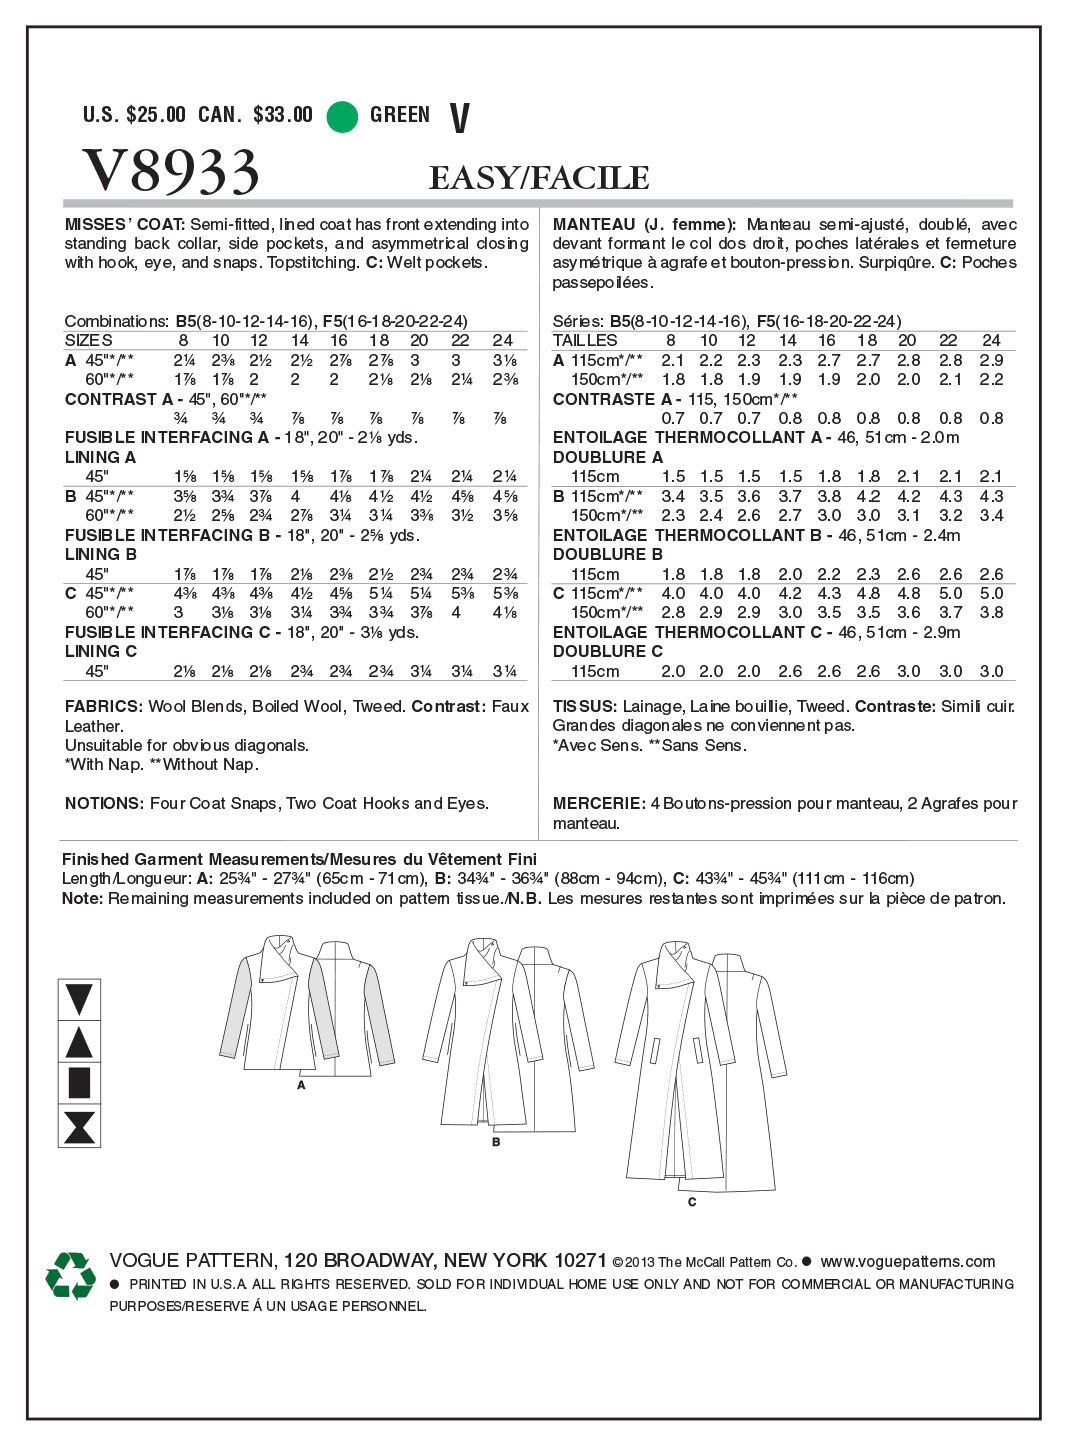 Vogue Patterns Misses Outerwear-V8933